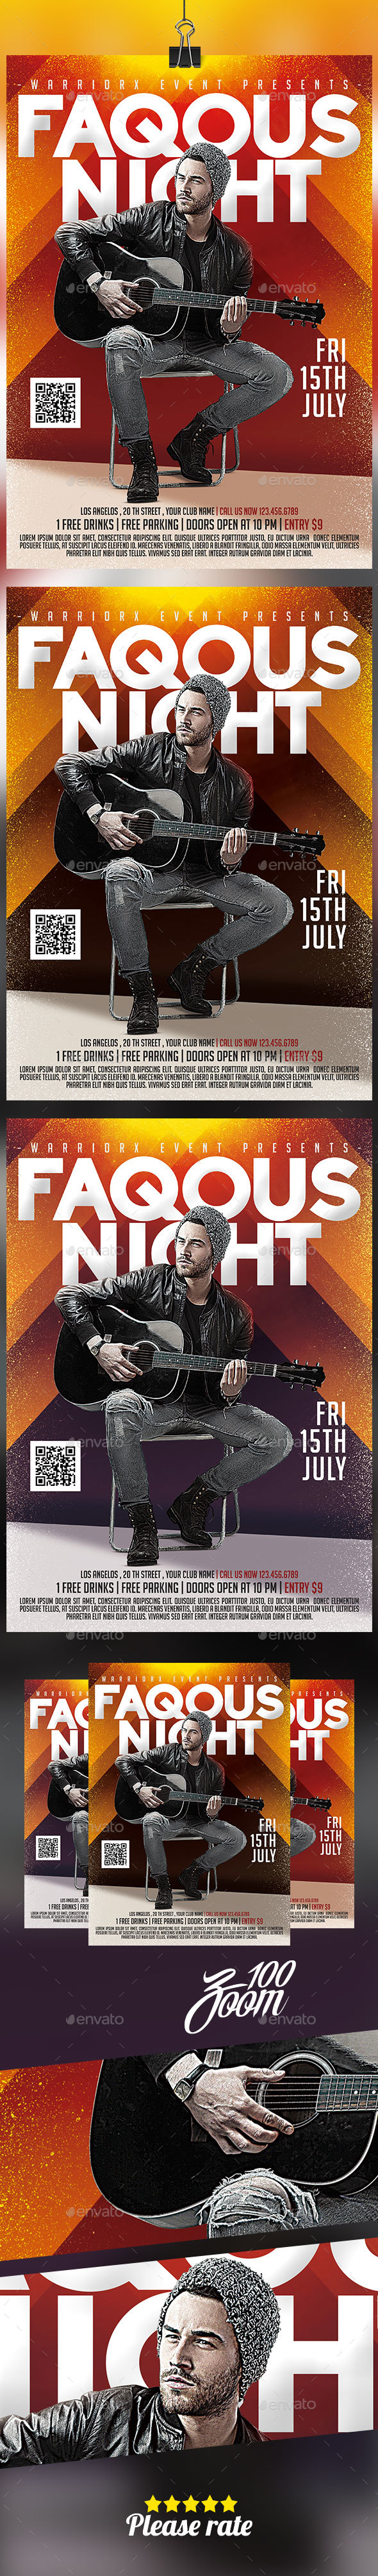 Faqous Night Flyer - Clubs & Parties Events